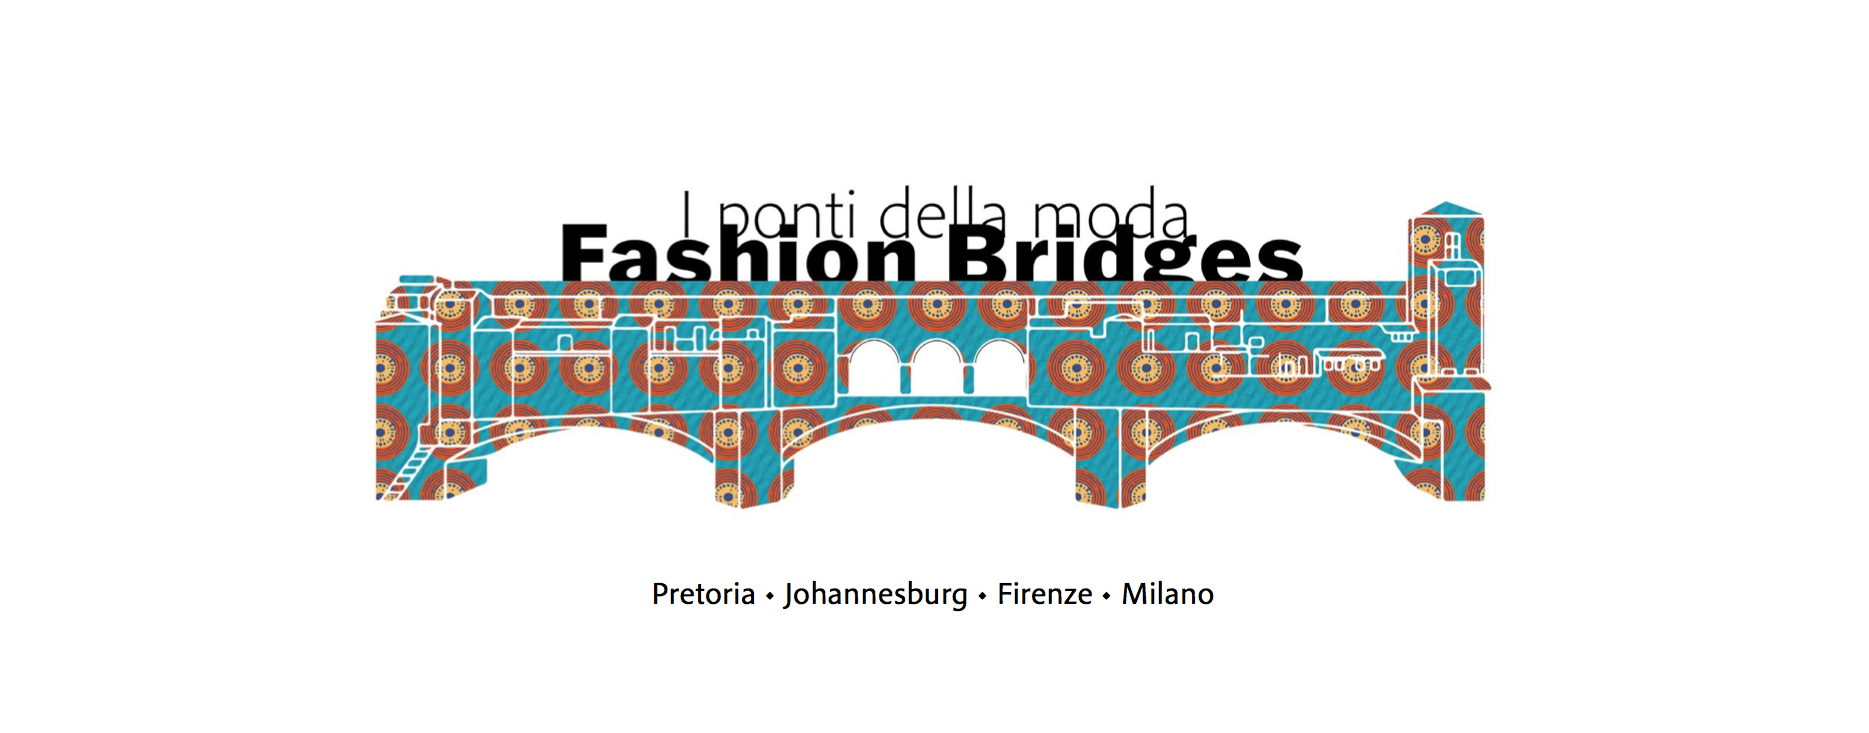 The logo of the Fashion Bridges project.